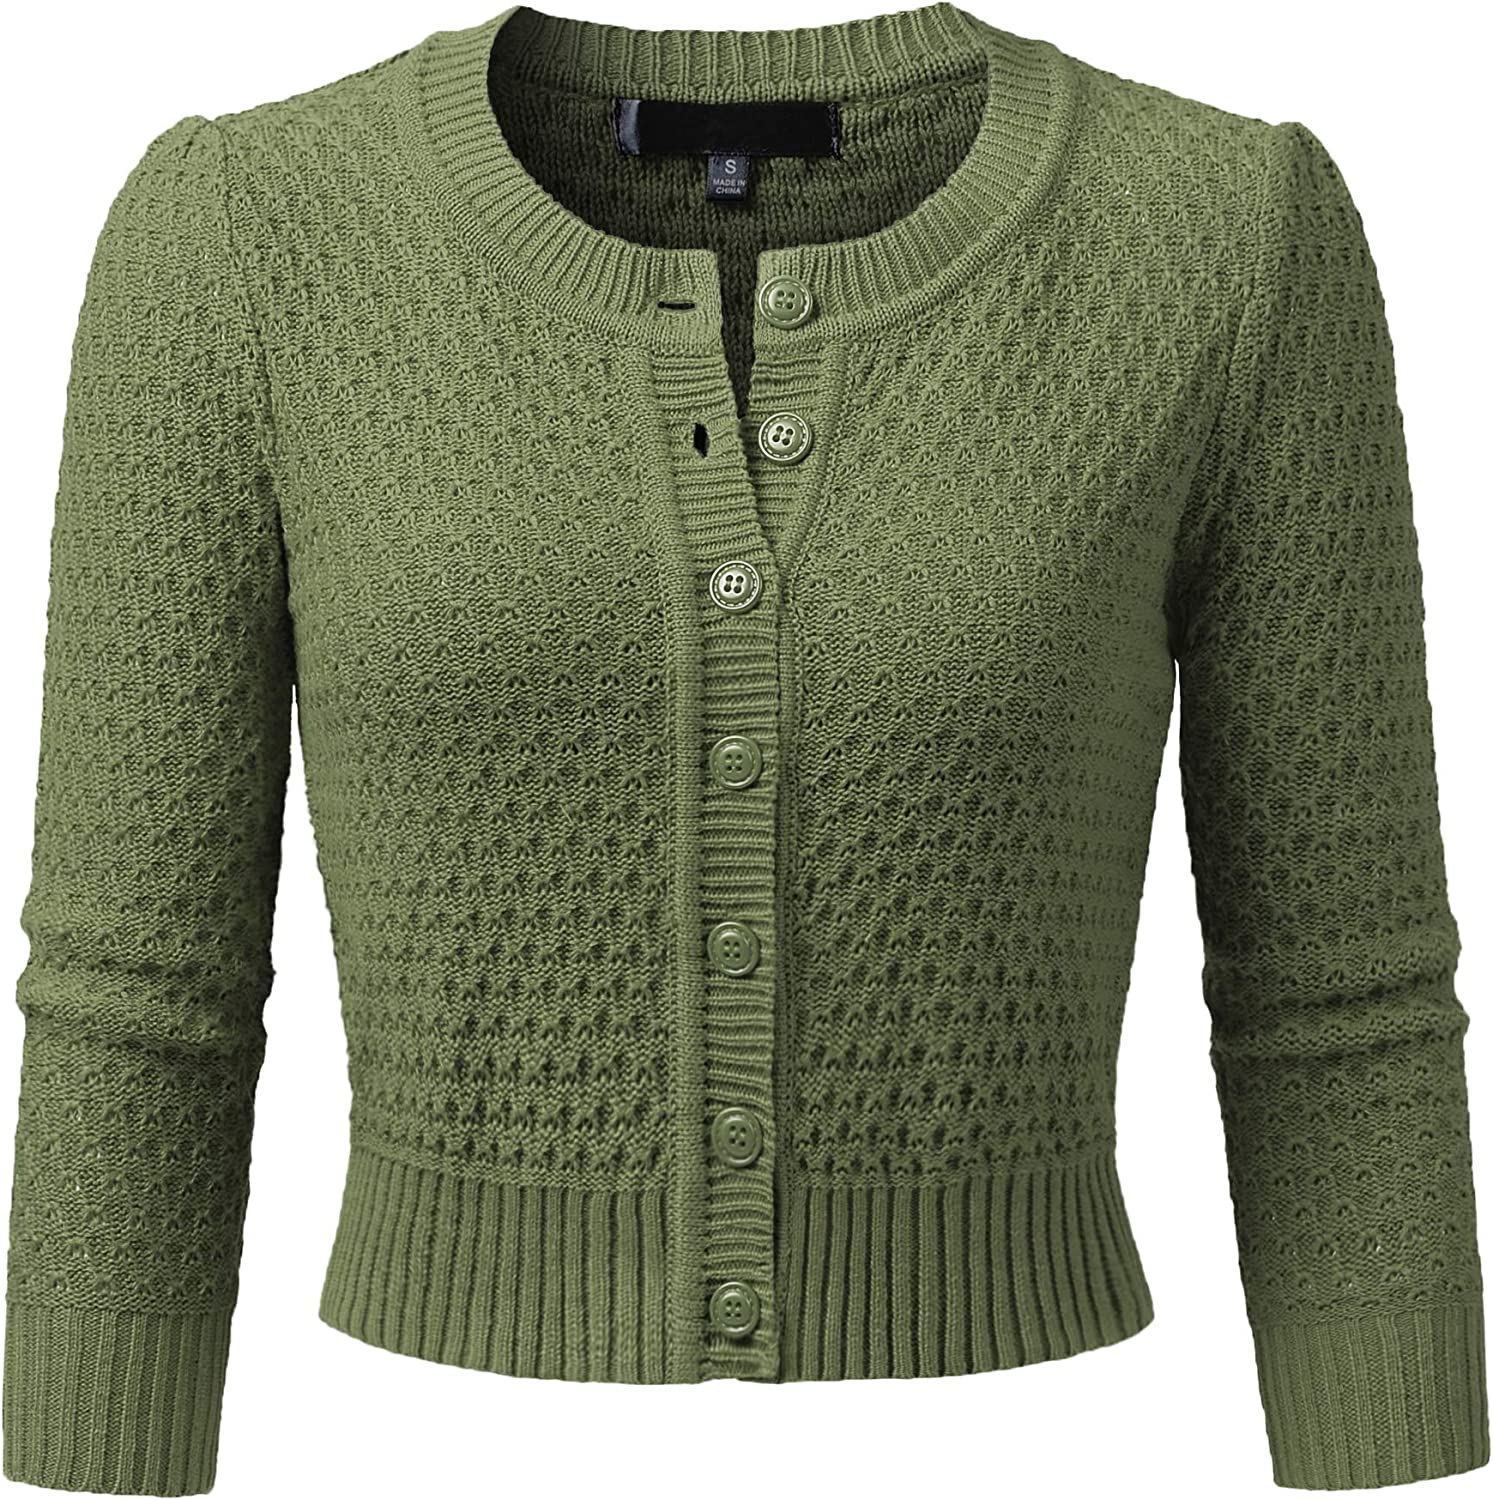 JSCEND Women's 3/4 Sleeve Crew Neck Button Down Cotton Knit Cropped Cardigan Sweater (S-3XL)